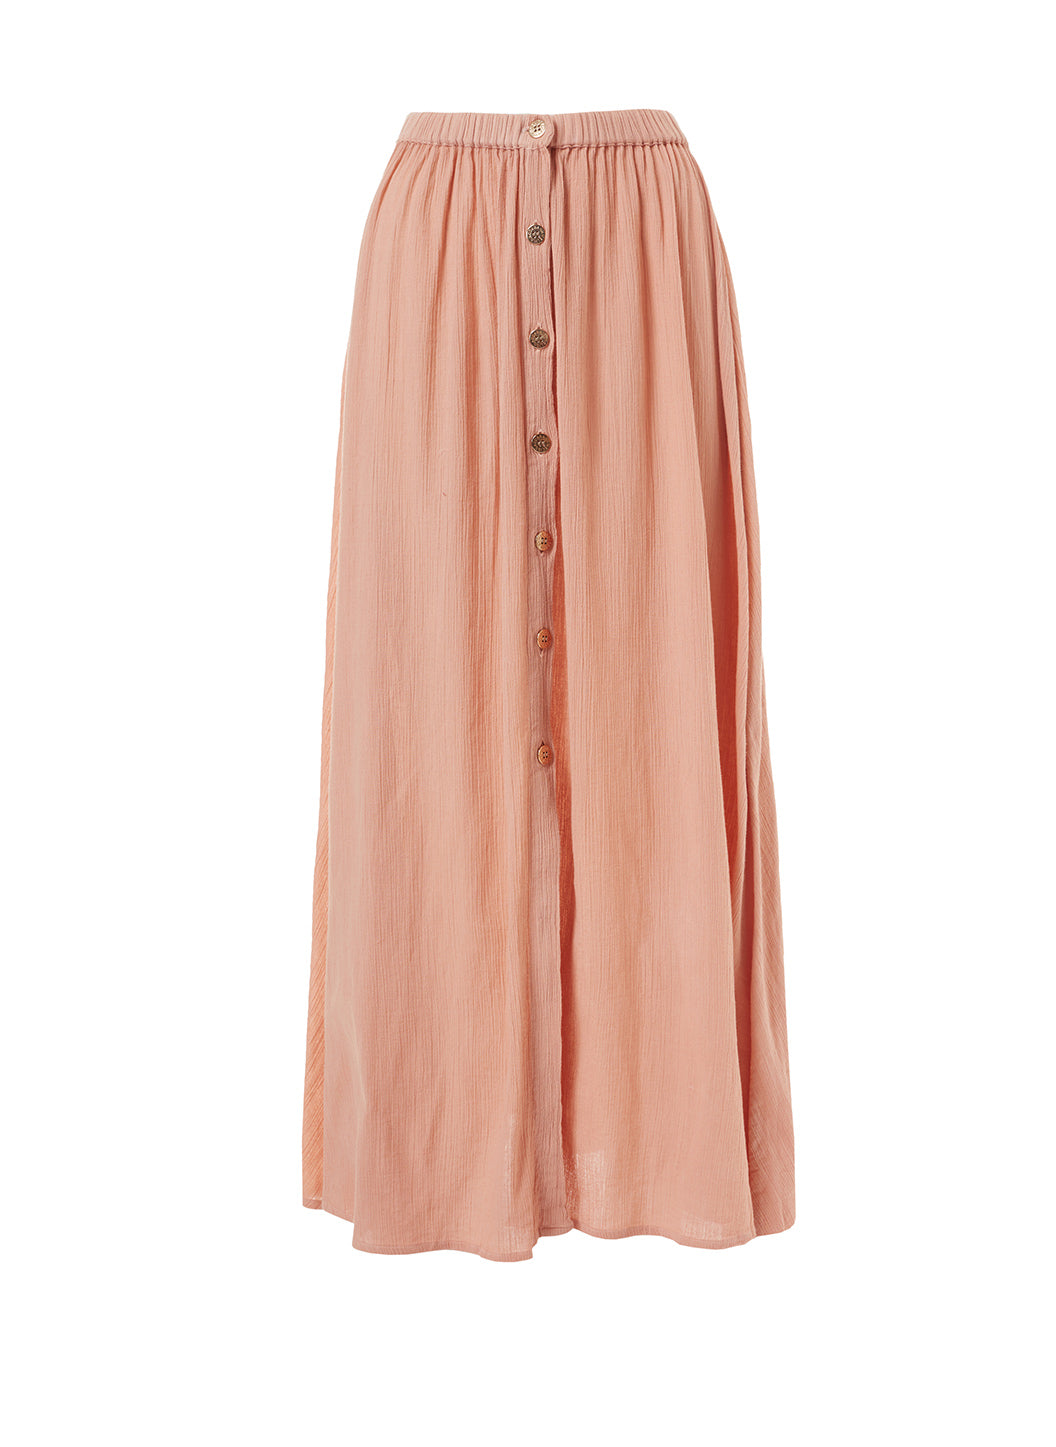 Dru Tan Button-Down Maxi Skirt